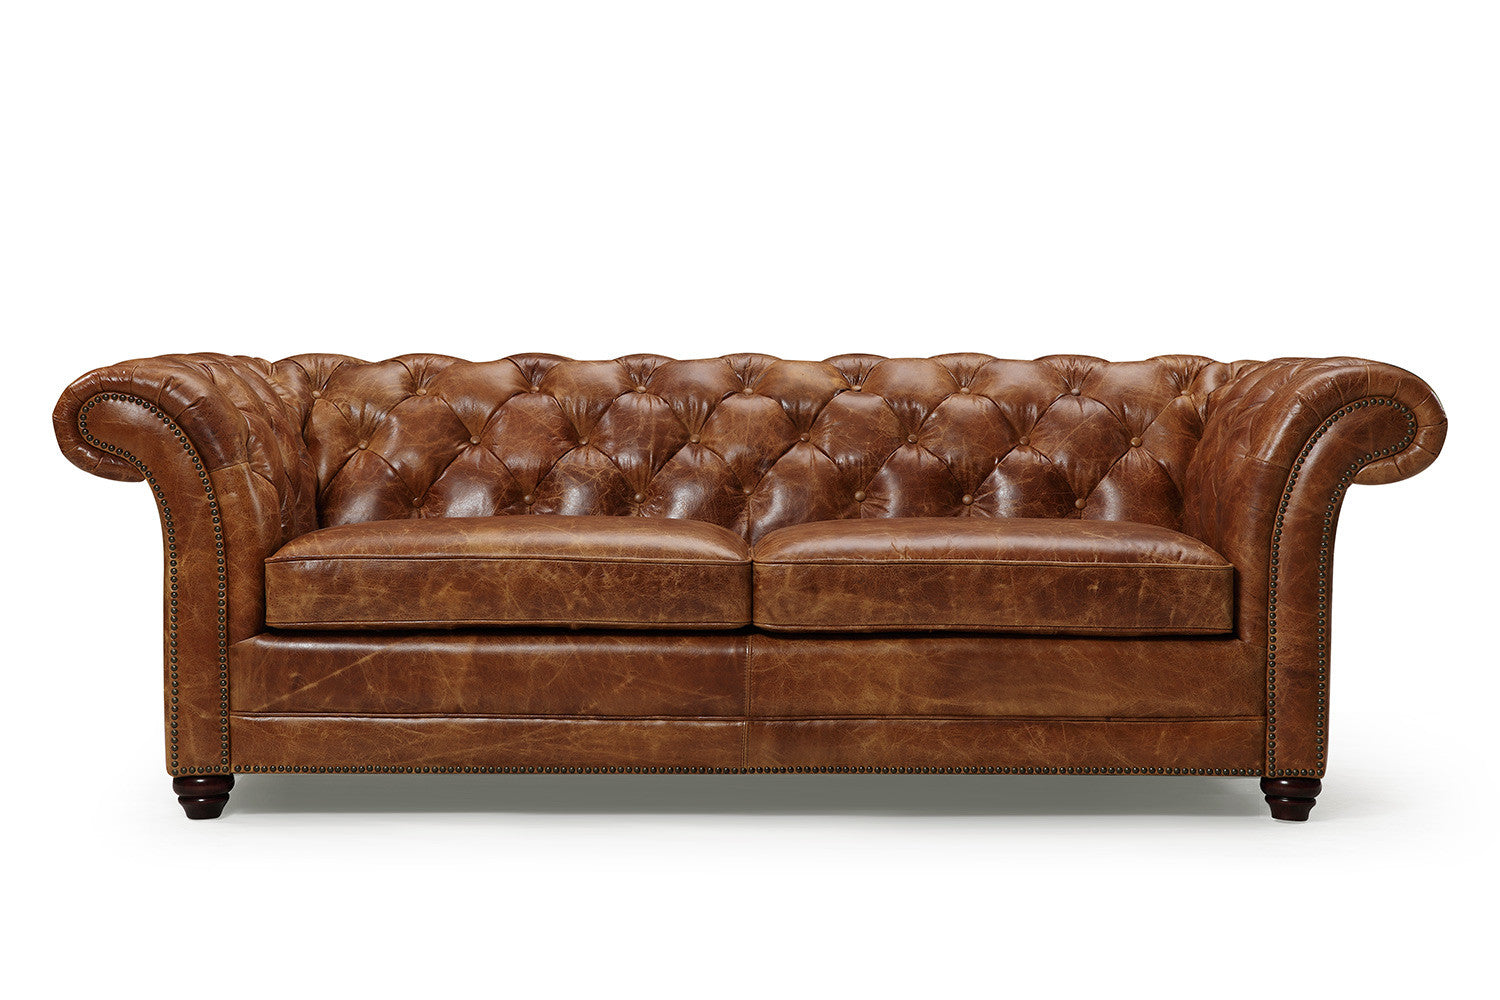 Great Westminster Chesterfield Leather Couch RM 124